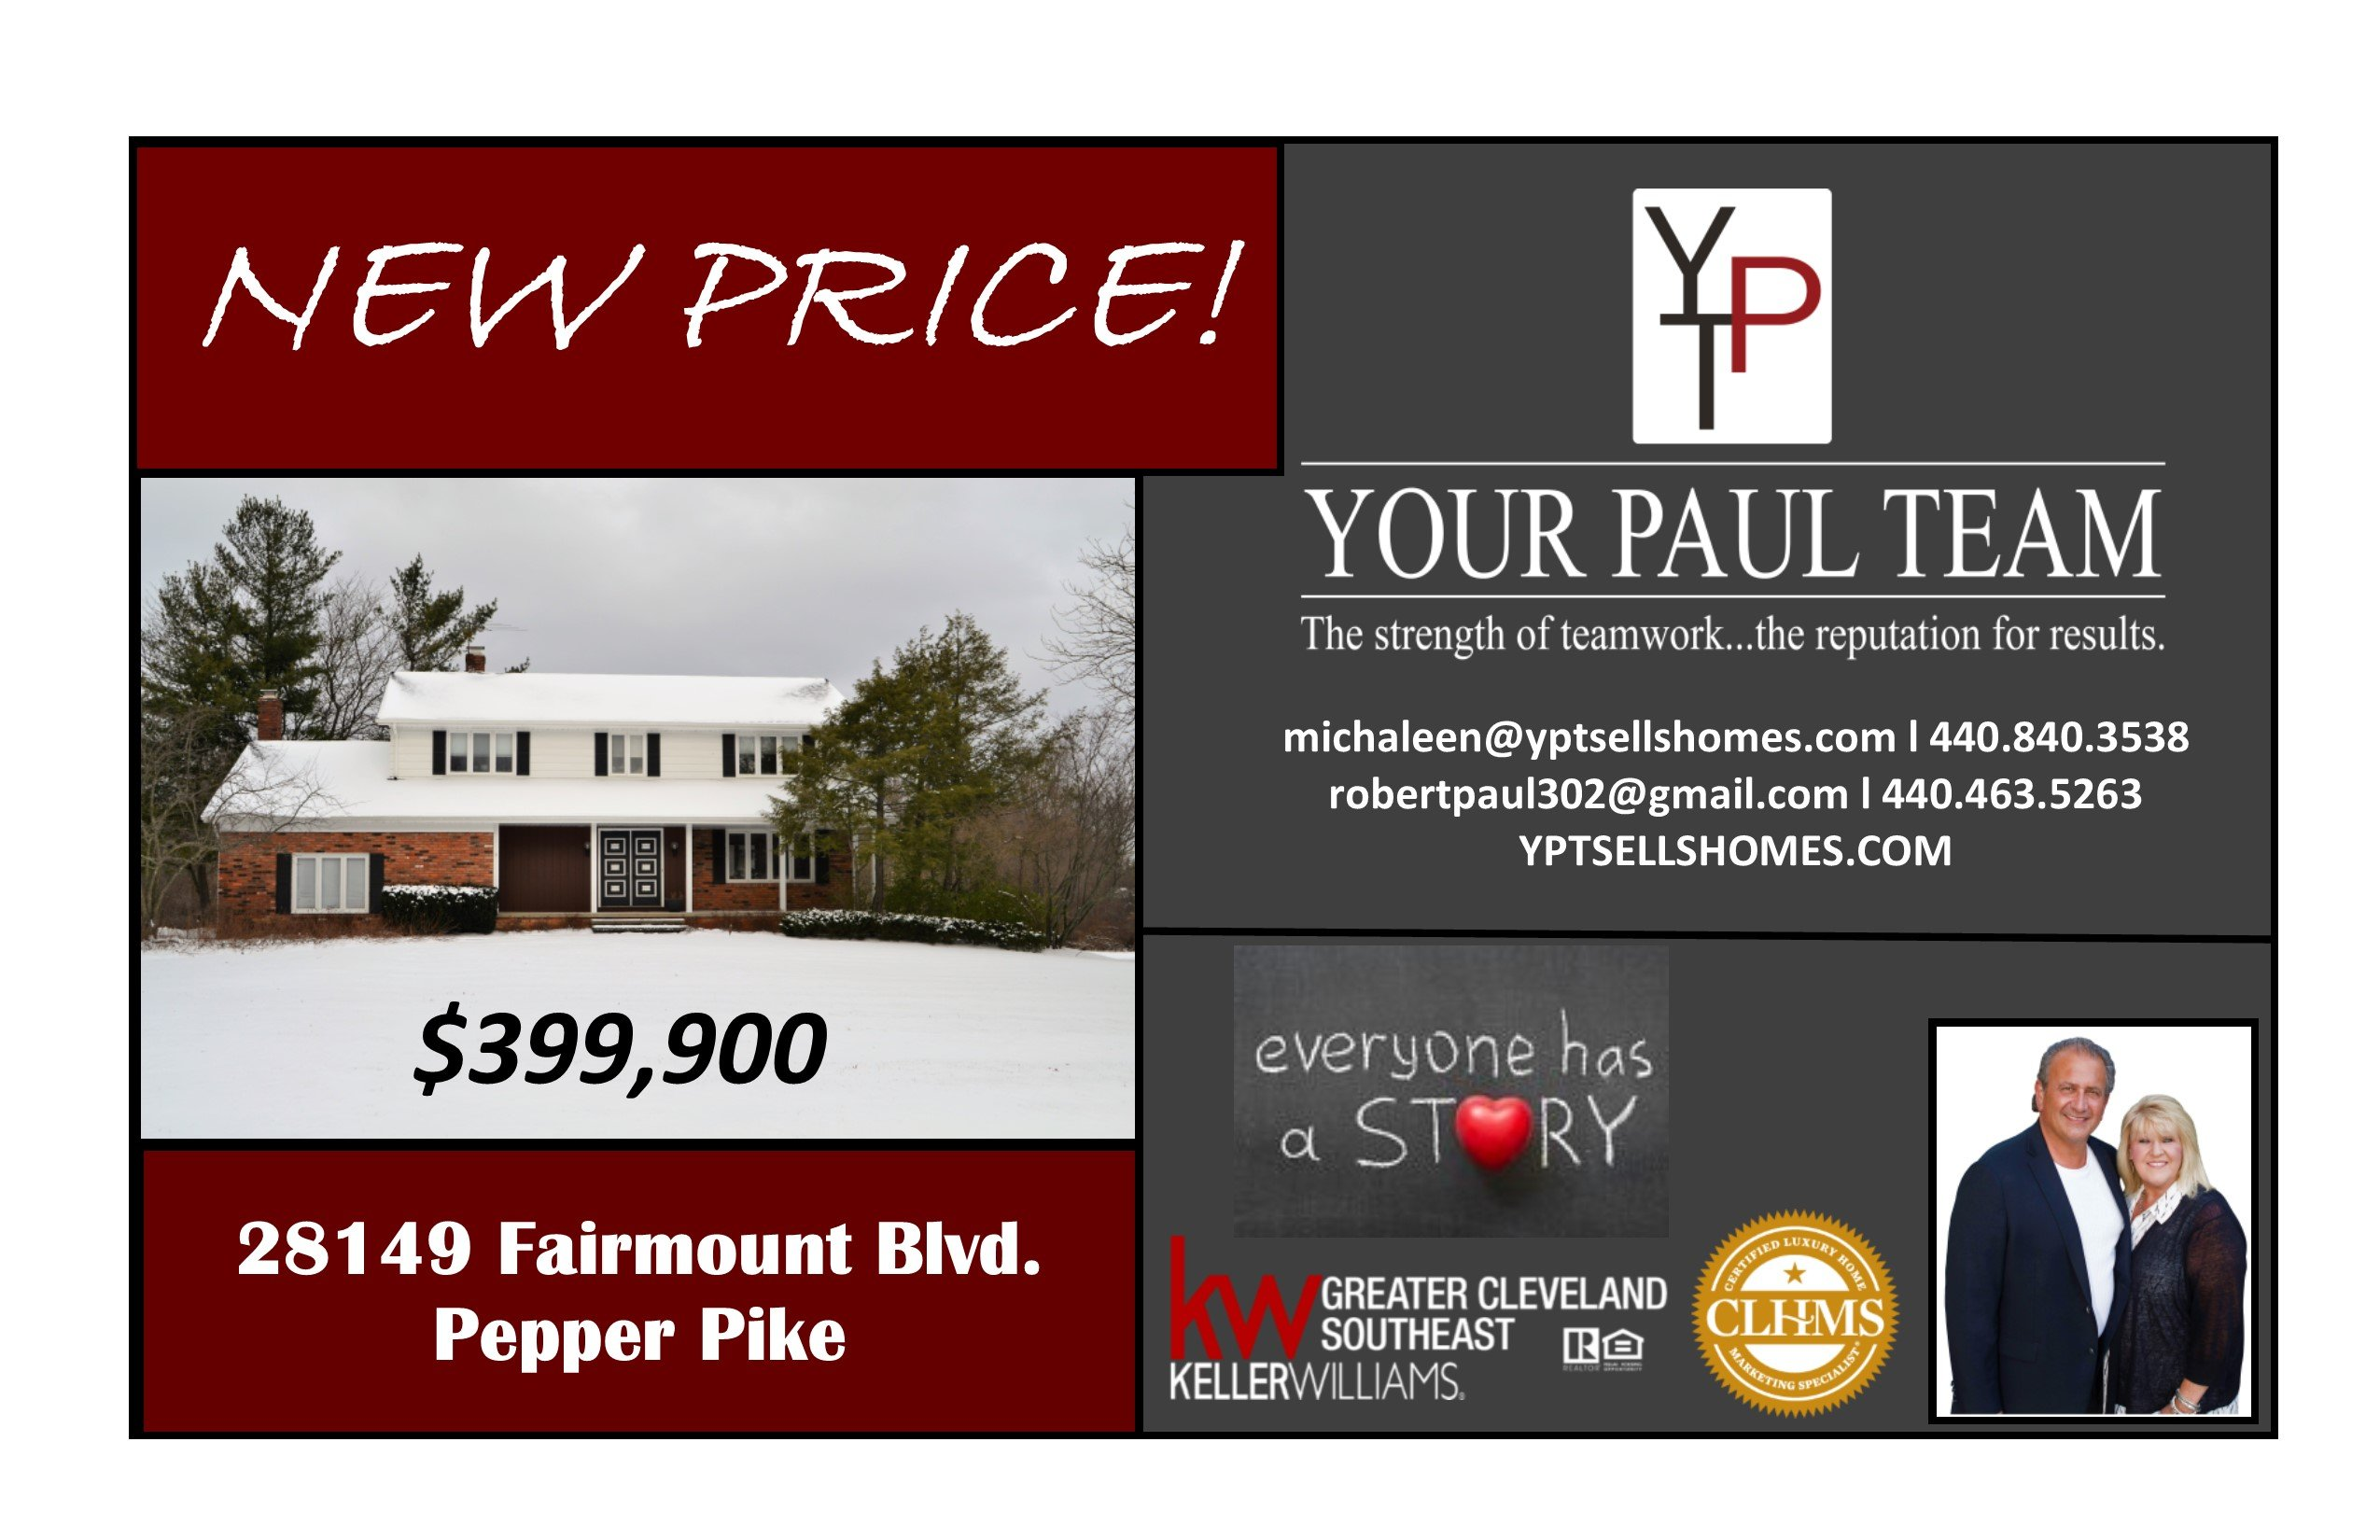 New Price – 28149 Fairmount Blvd.